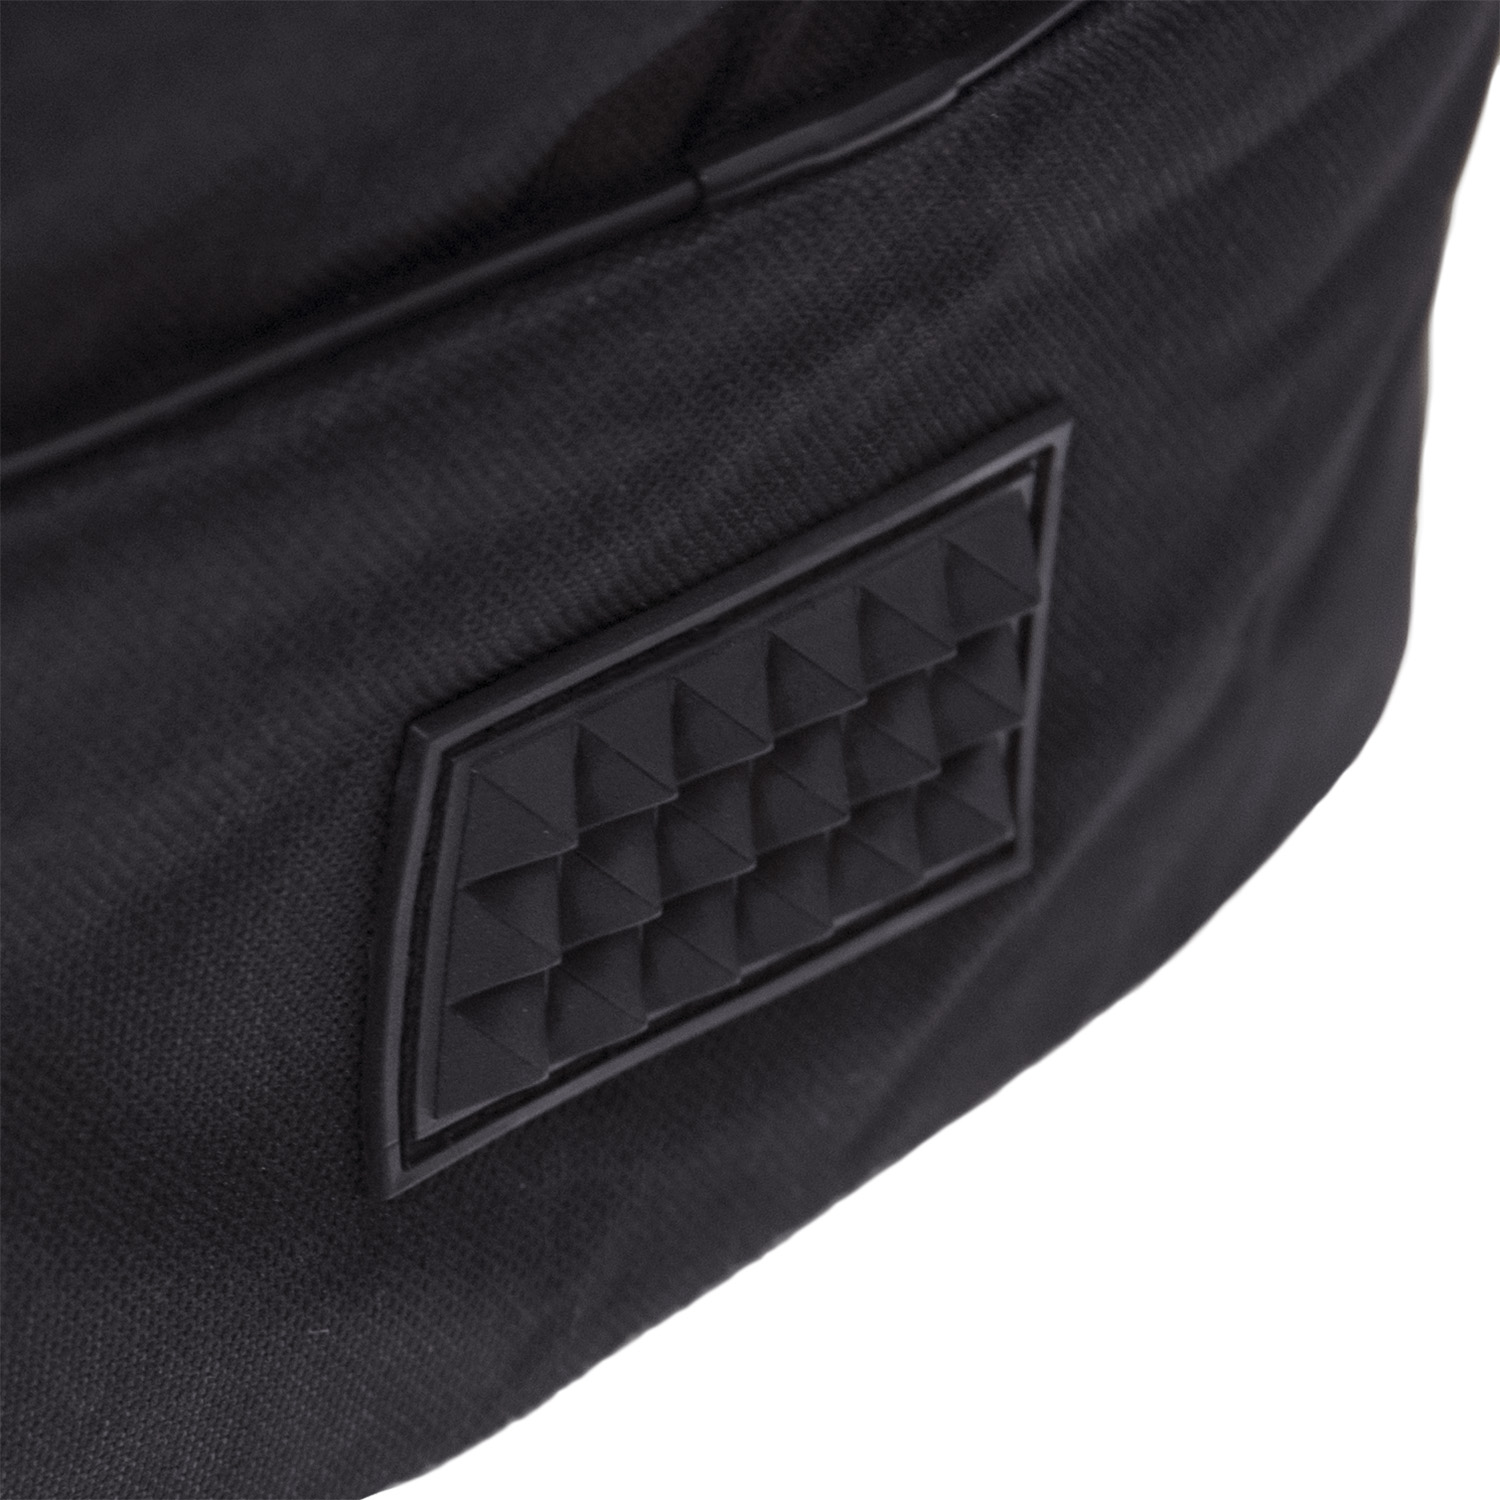 Padded Gig Bag Rubber Bumpers